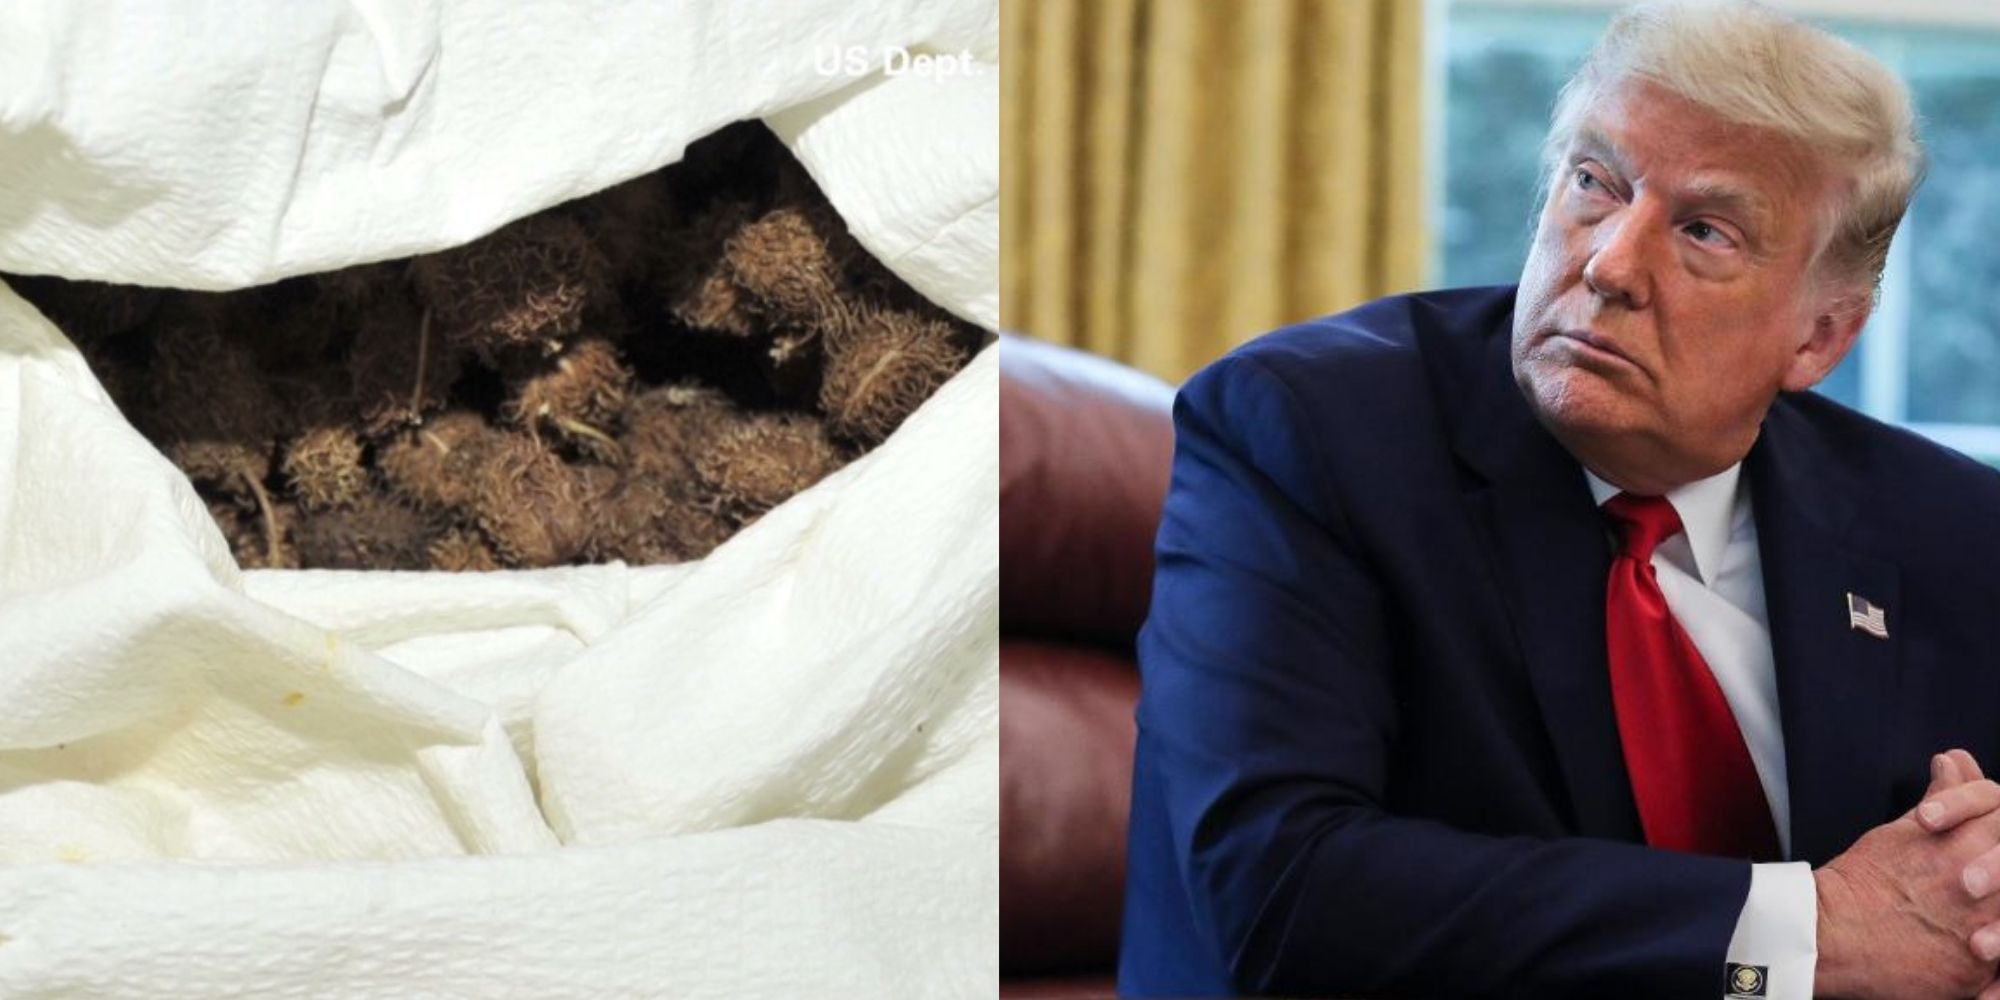 BREAKING: Secret Service intercepts package addressed to President Trump containing deadly ricin